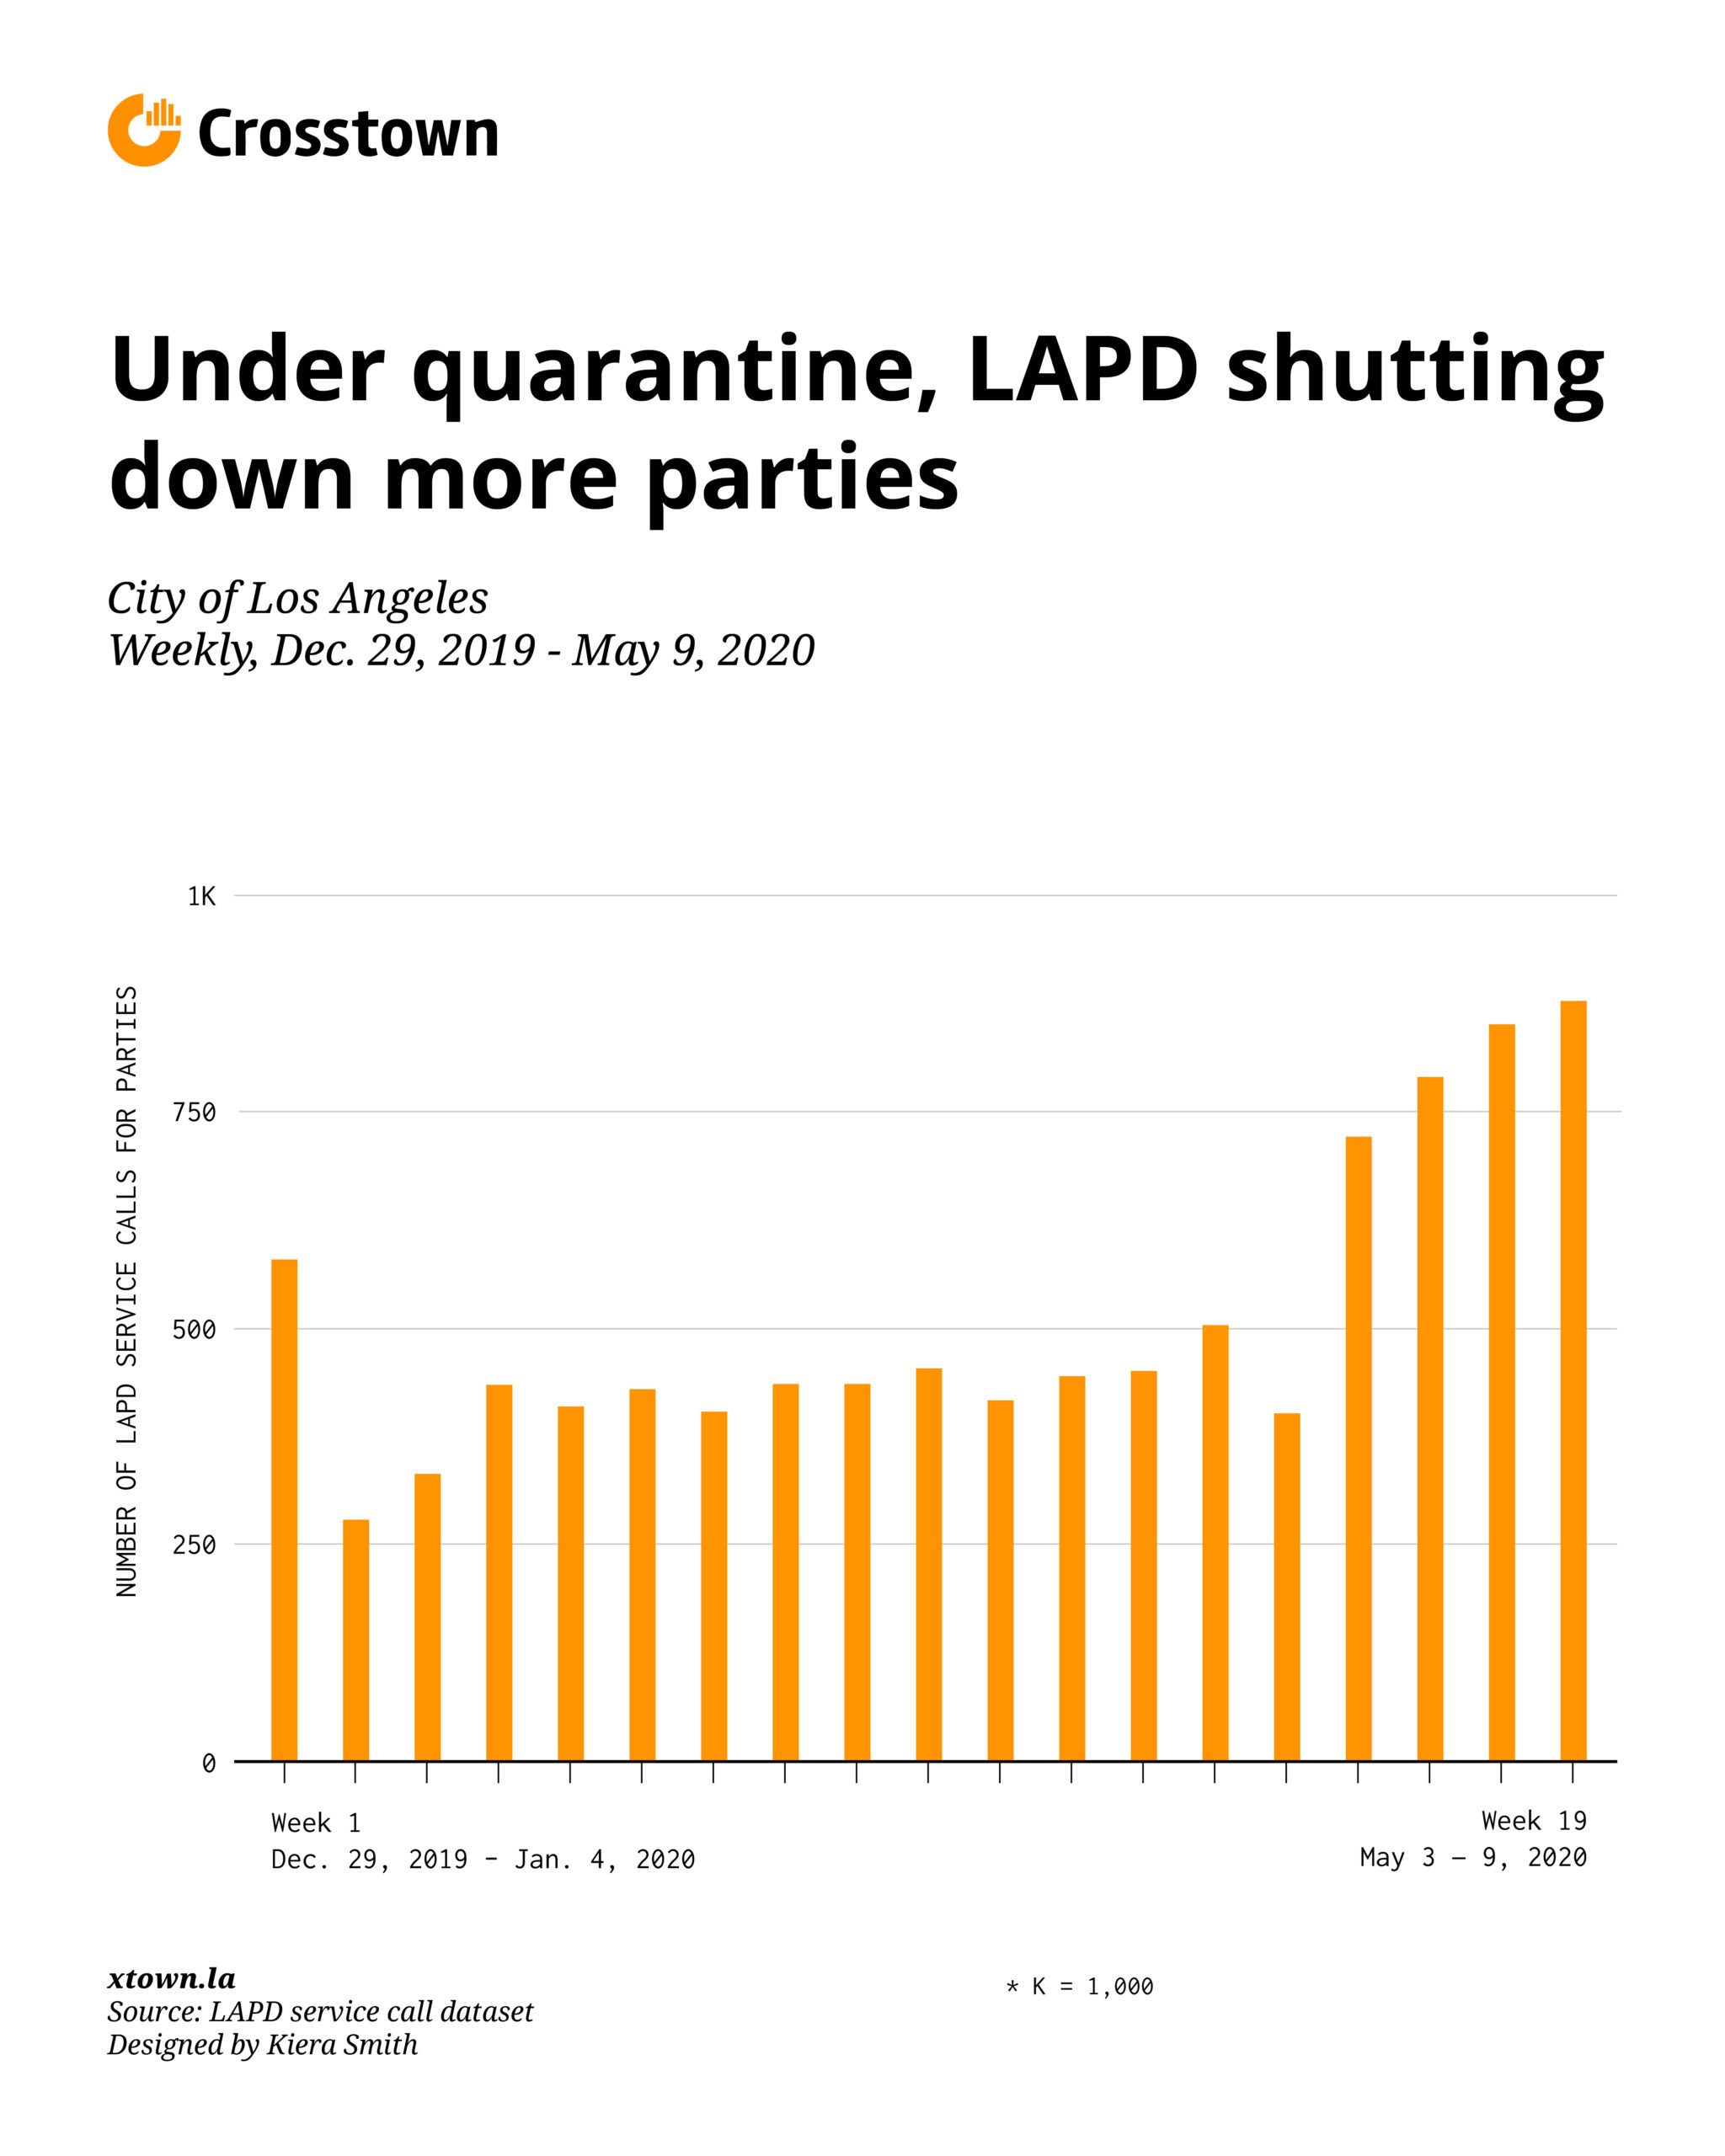 D shows that LAPD is breaking up many more parties under coronavirus quarantine